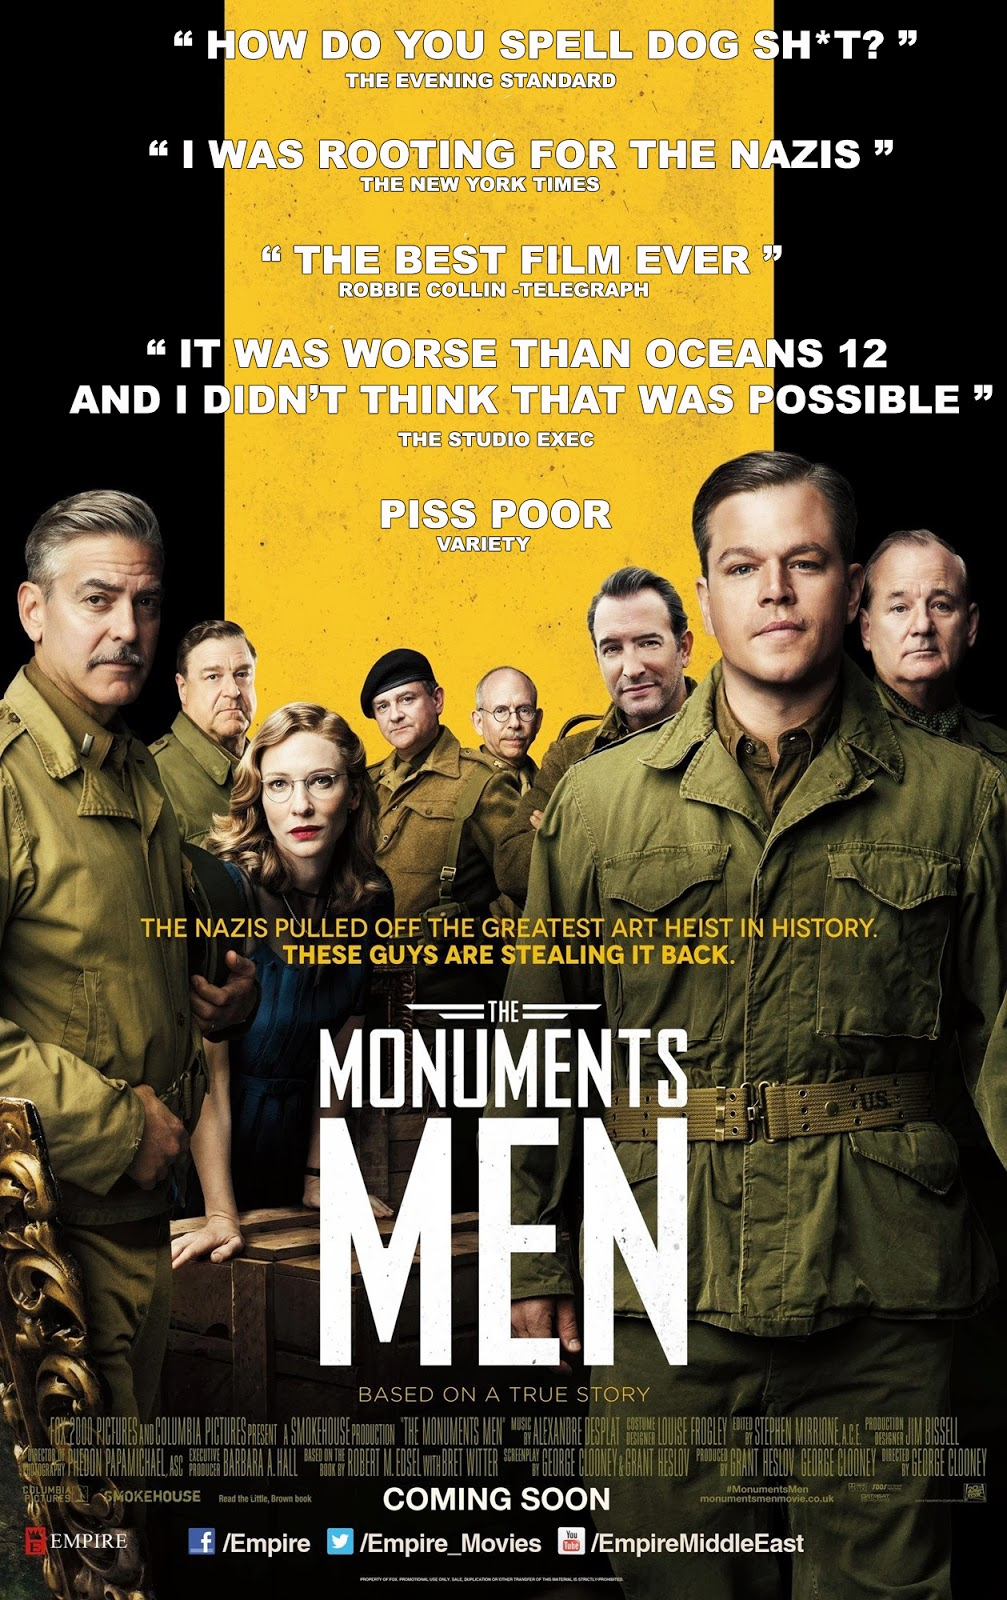 BAD POSTER: THE MONUMENTS MEN